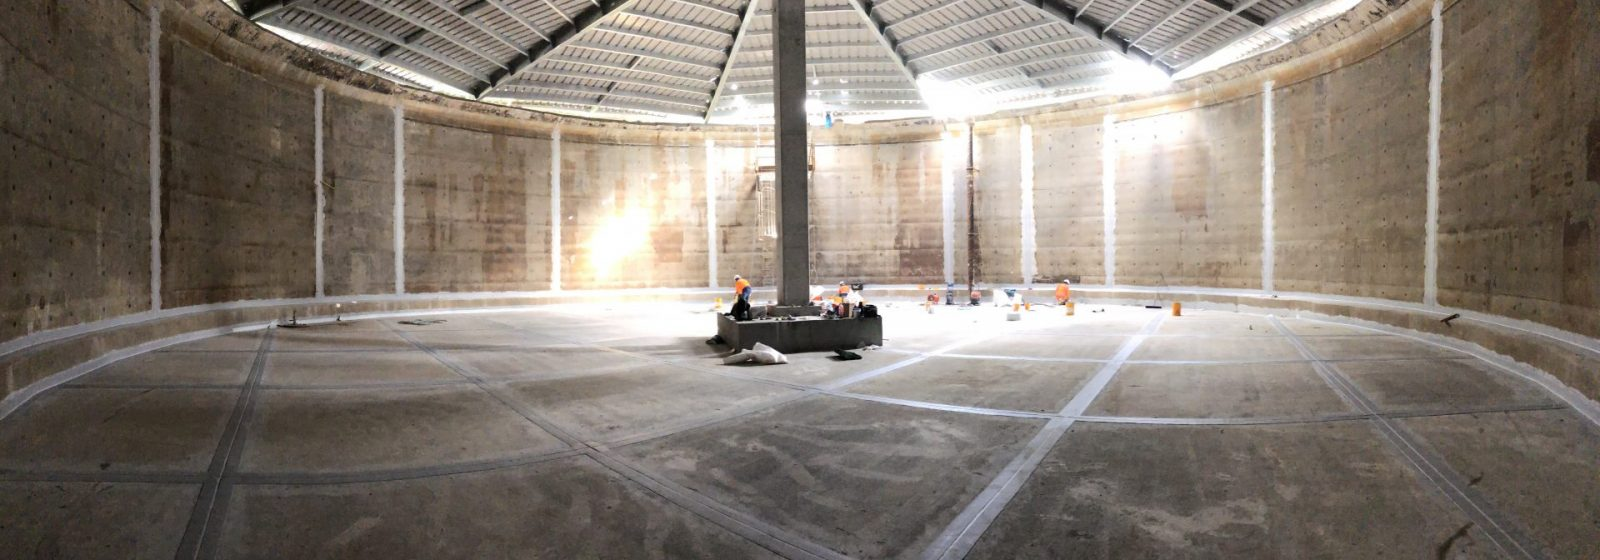 Kowhai Water Reservoir Roof Replacement - Header Image